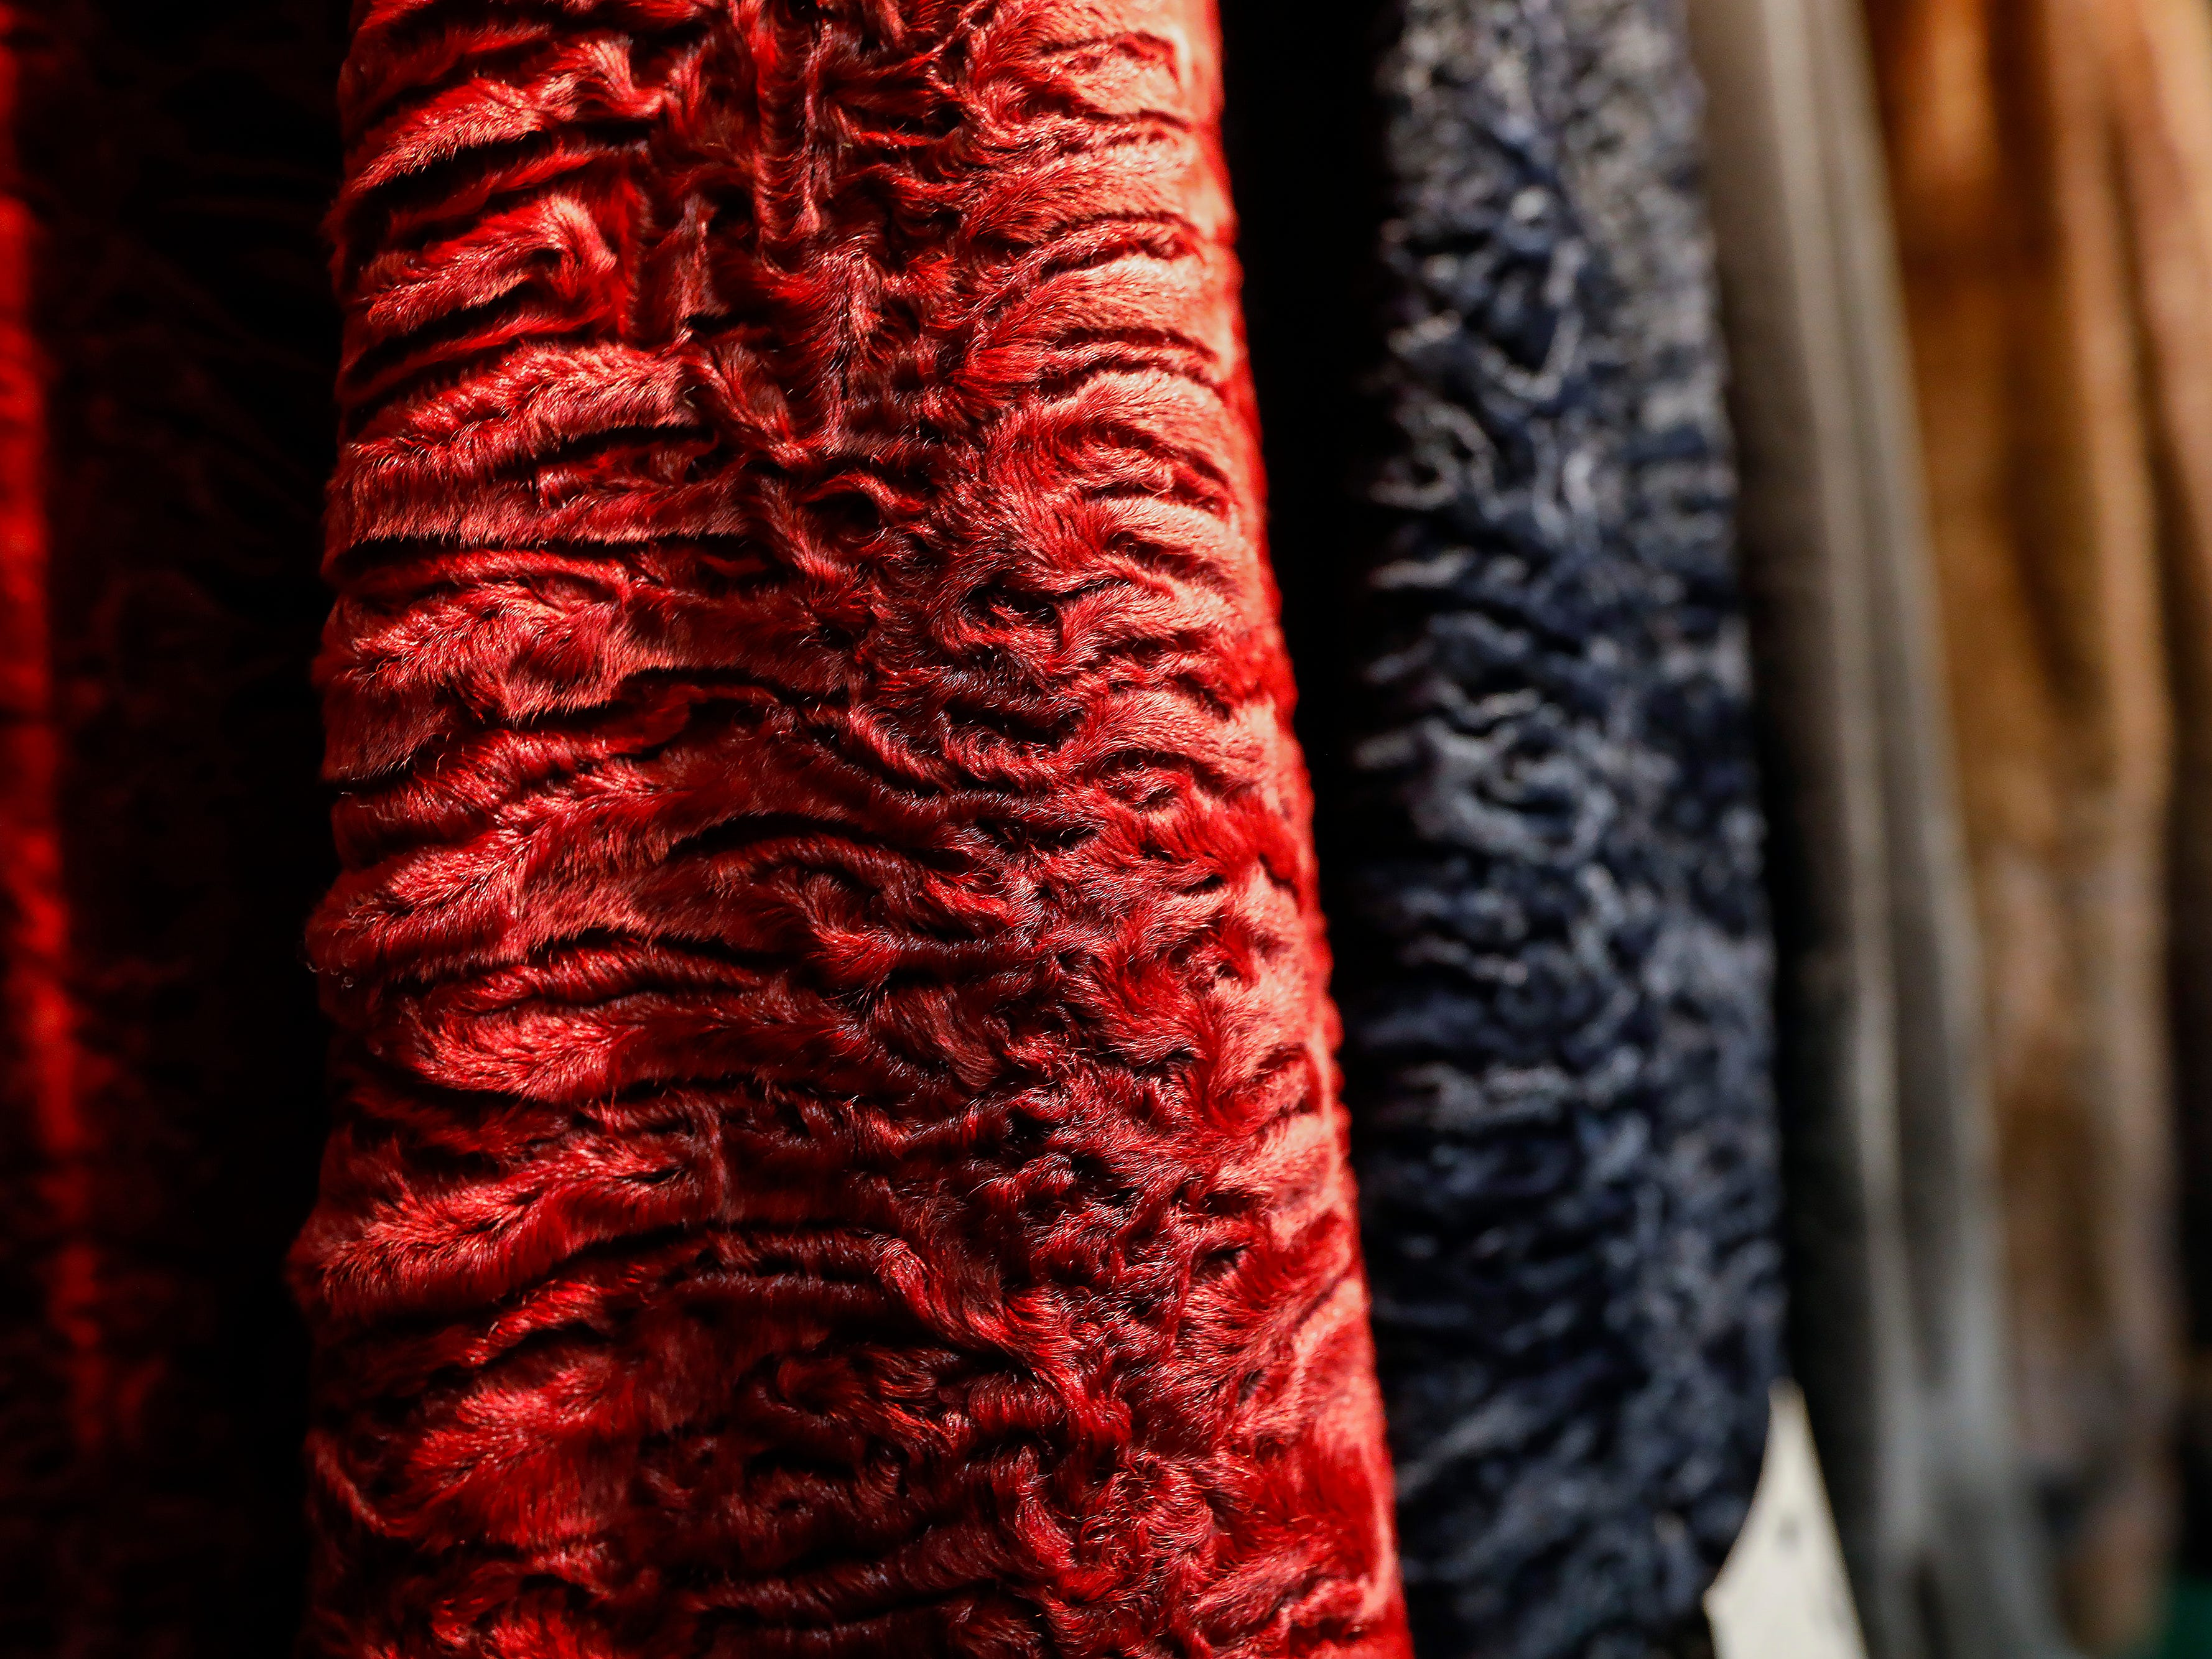 A look at a colorful coat sleeve at McDaniel Furs, located at 901 S. Glenstone Ave.